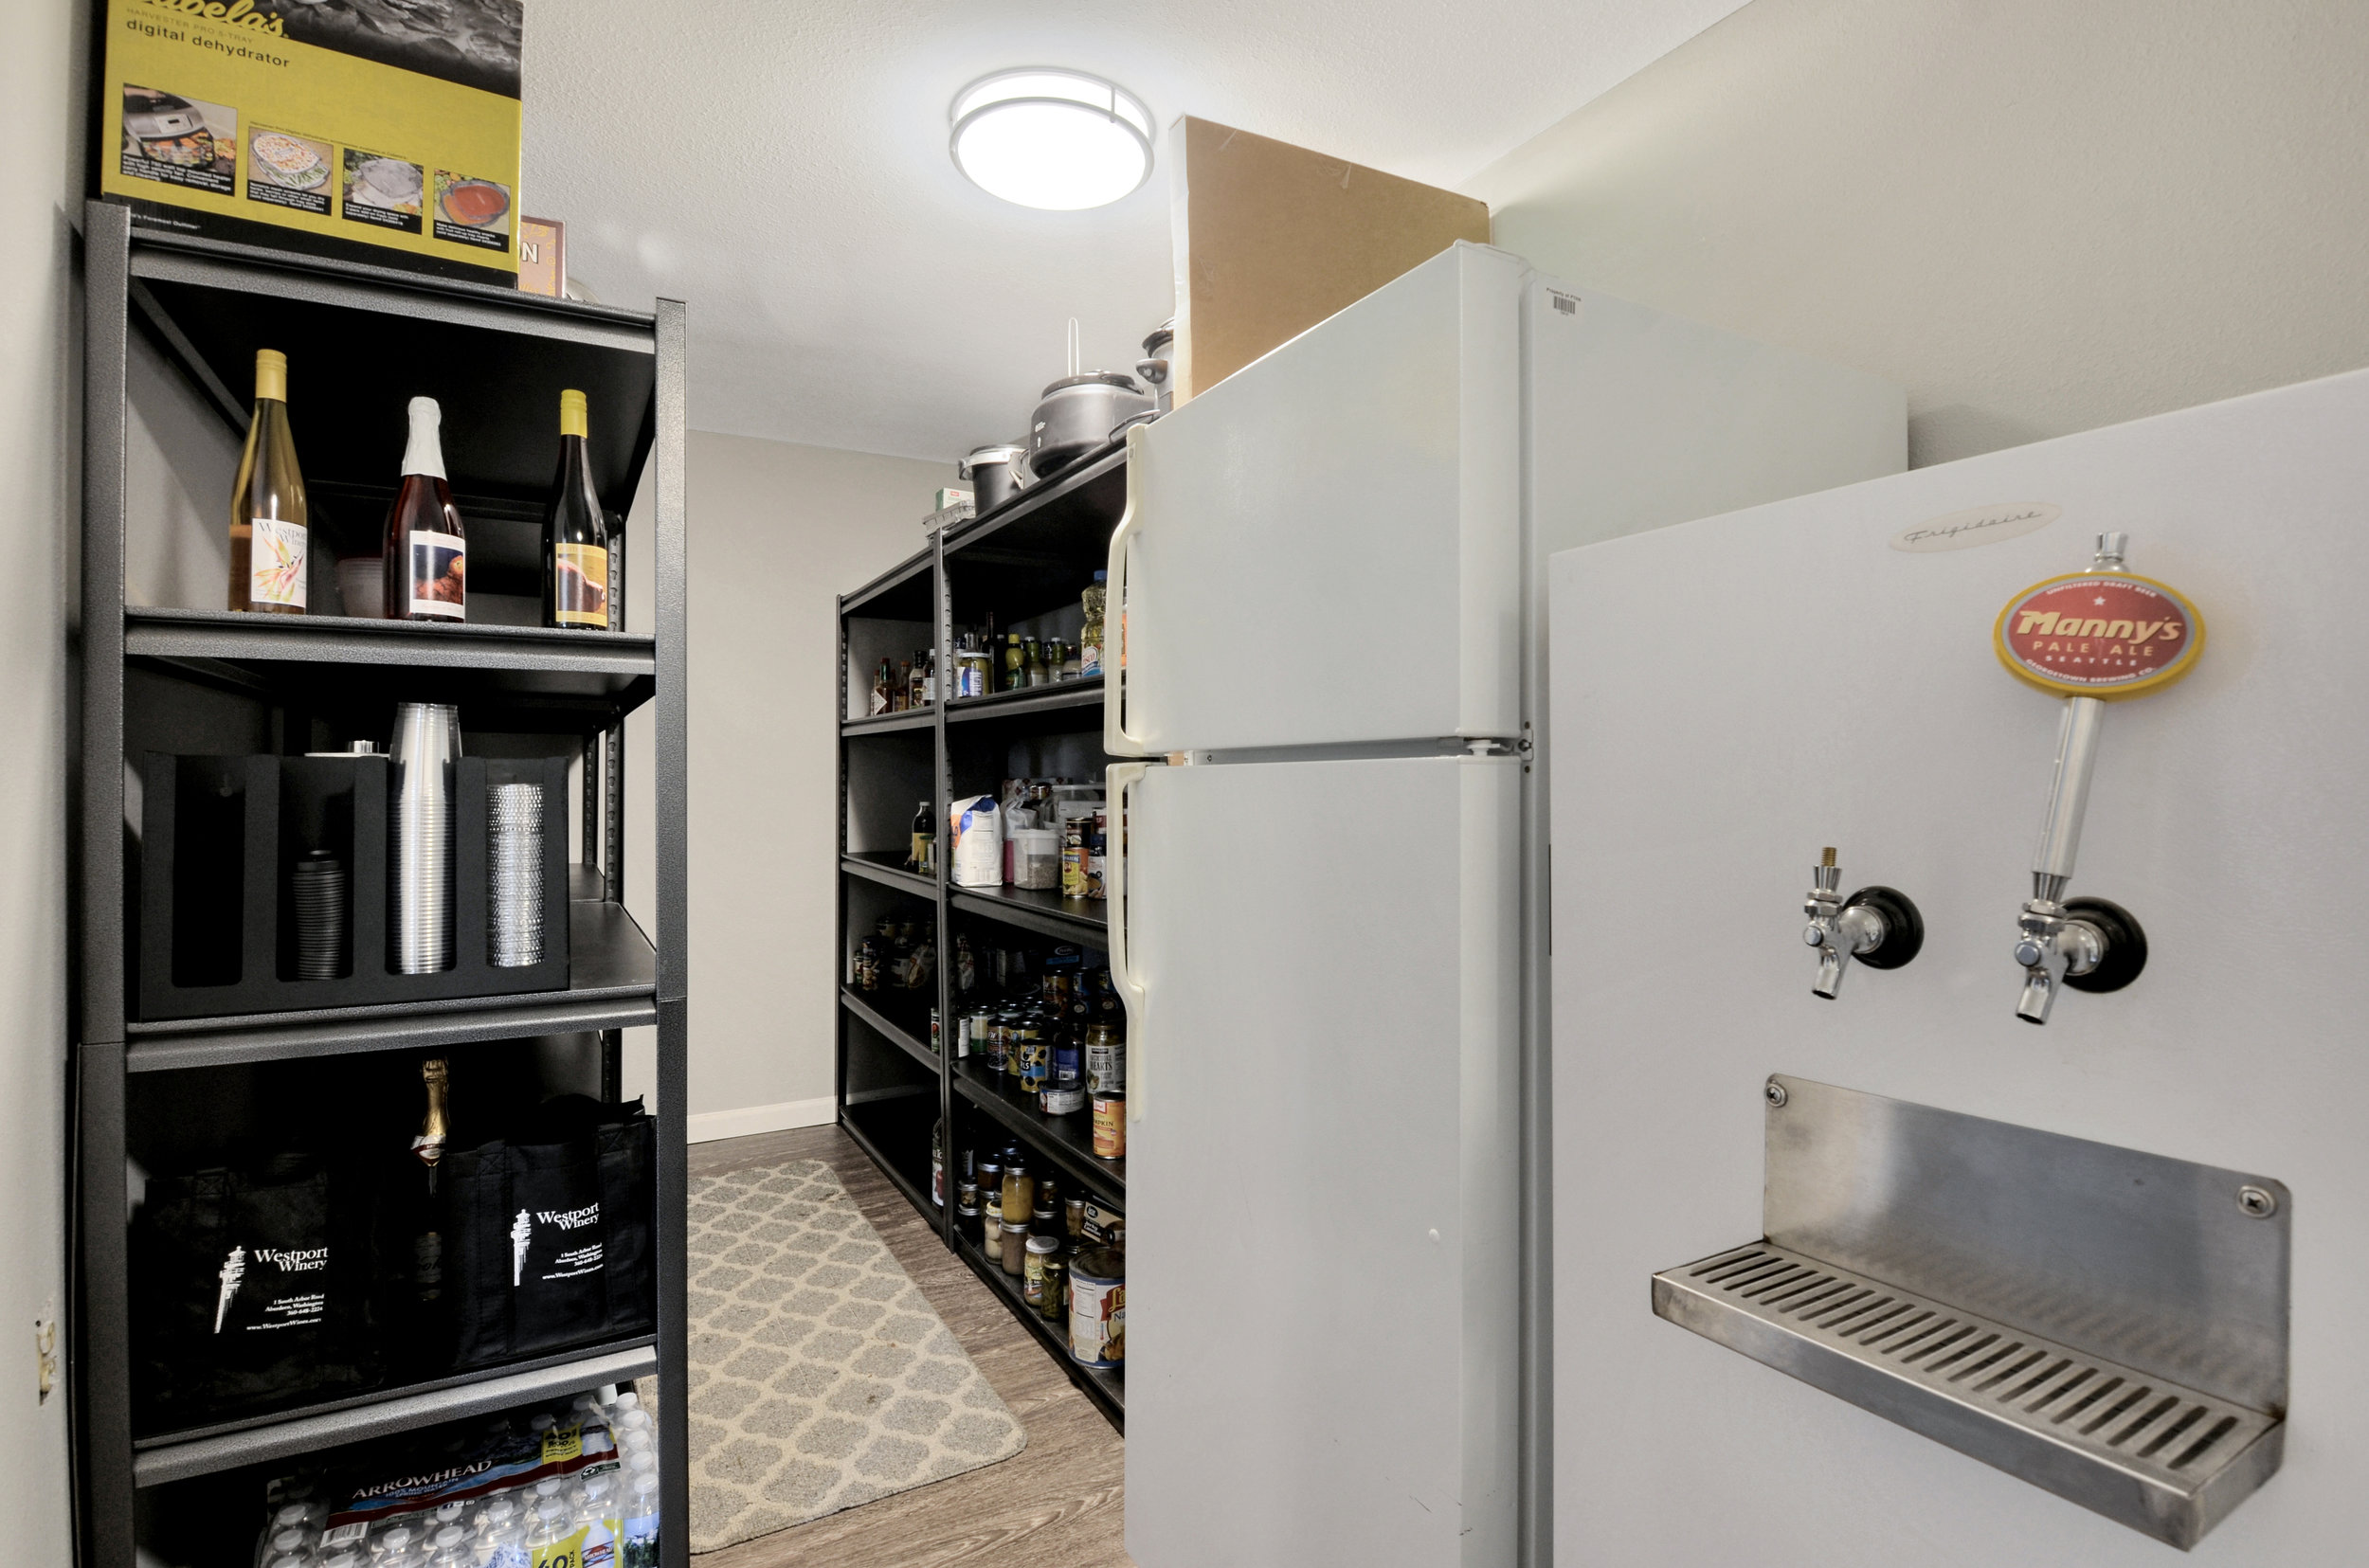 Don't miss the huge pantry accessed from the kitchen, with steps down into the family room as well for a circular flow. Storage galore here in this area, with a big closet just off the kitchen for additional pantry storage.